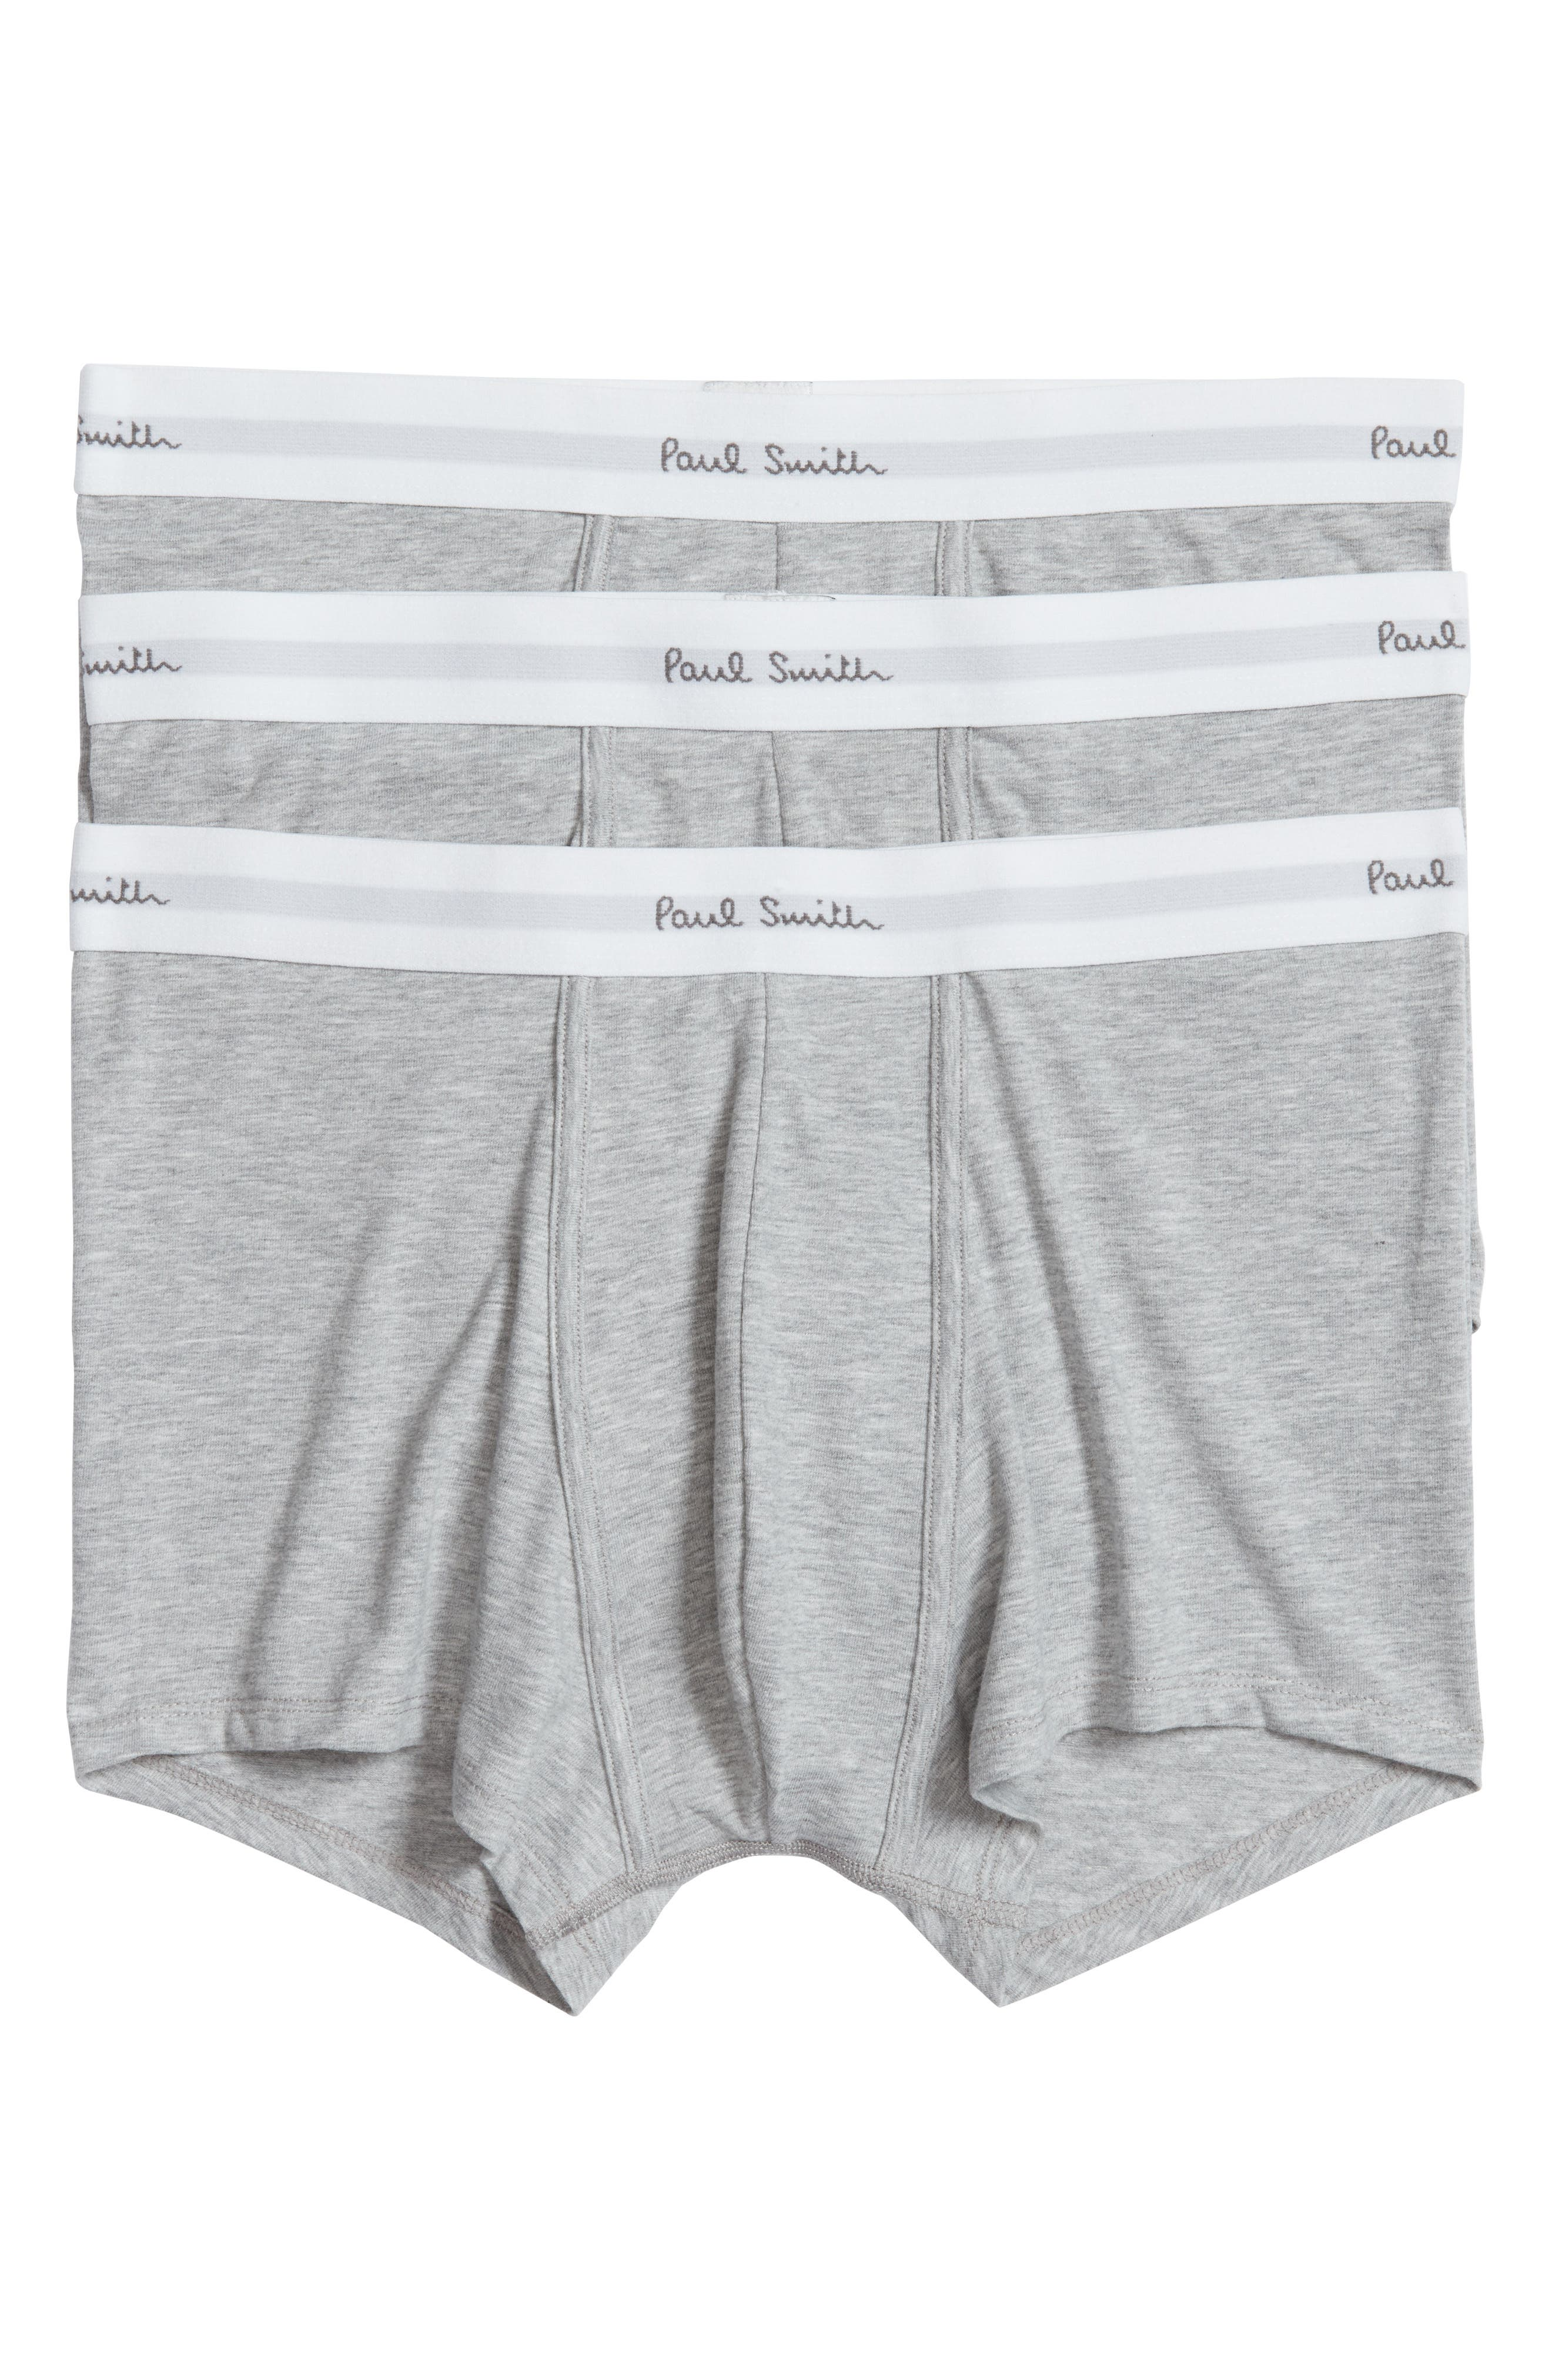 3-Pack Square Cut Trunks,                         Main,                         color, Grey